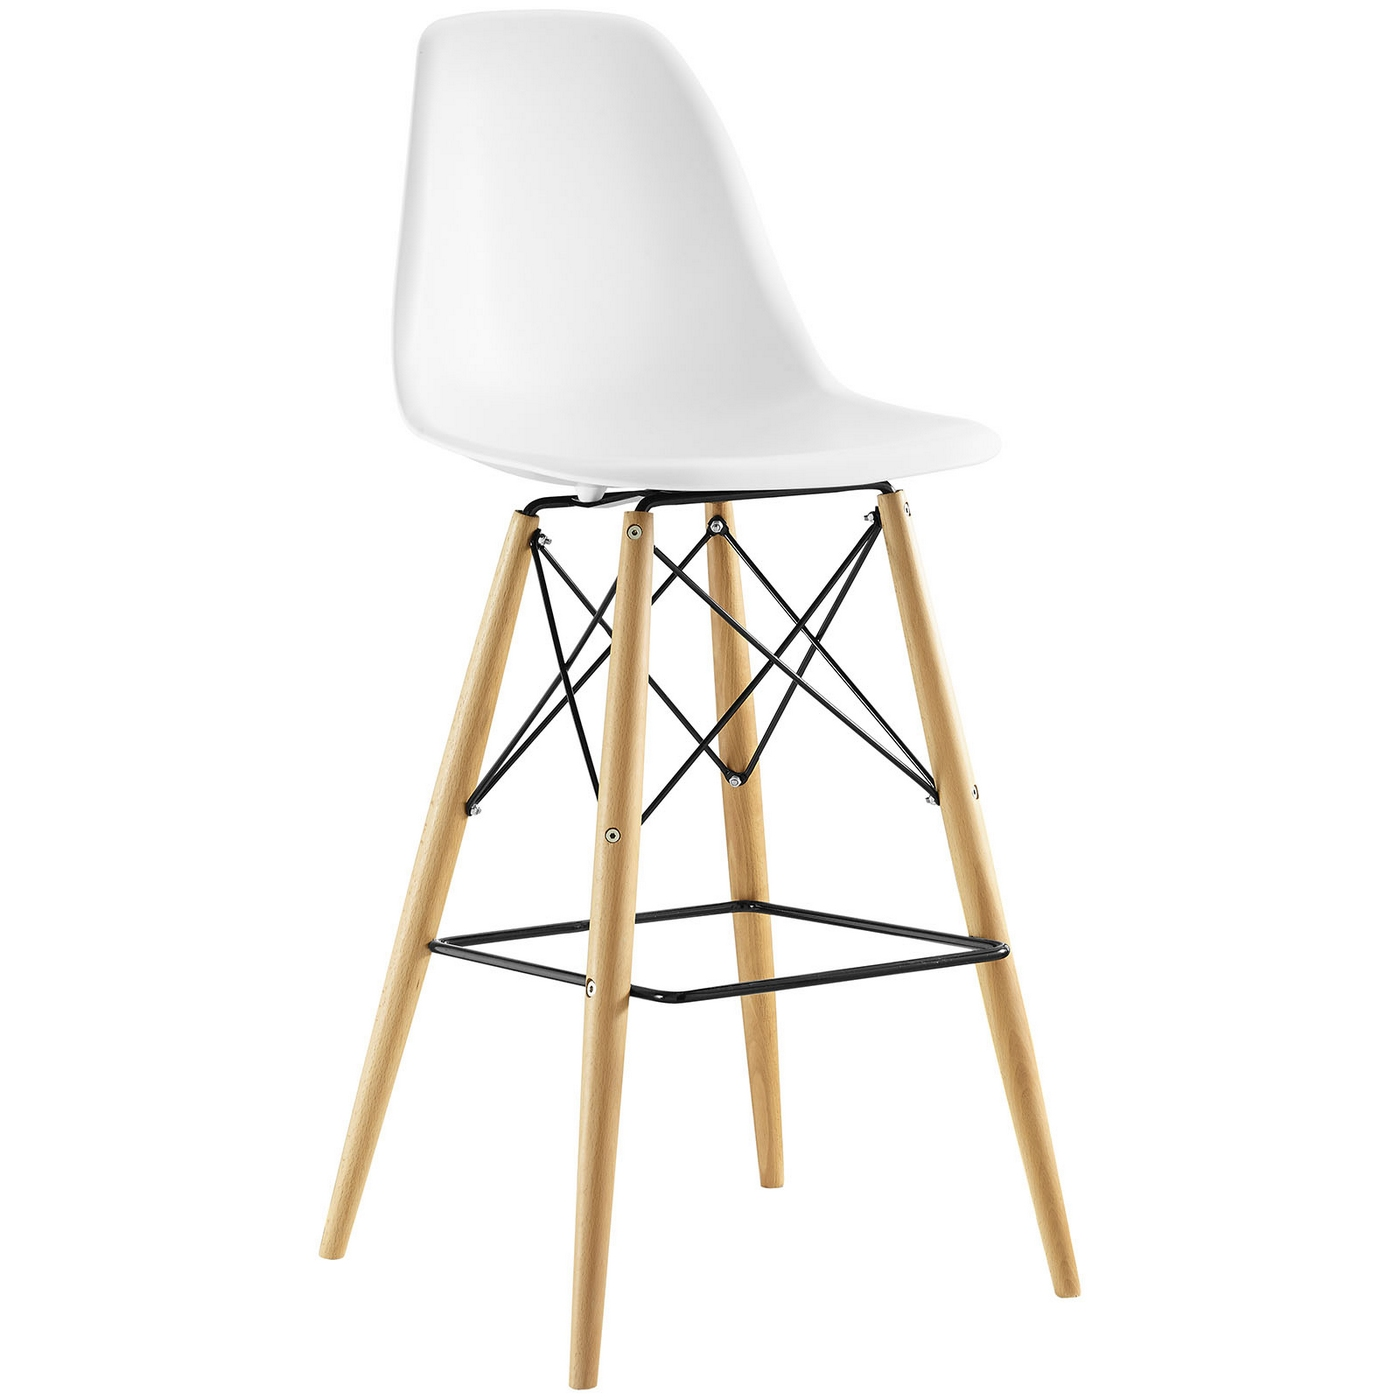 Modern White Bar Stools Pyramid Modern Molded Plastic Bar Stool With Wood Legs White